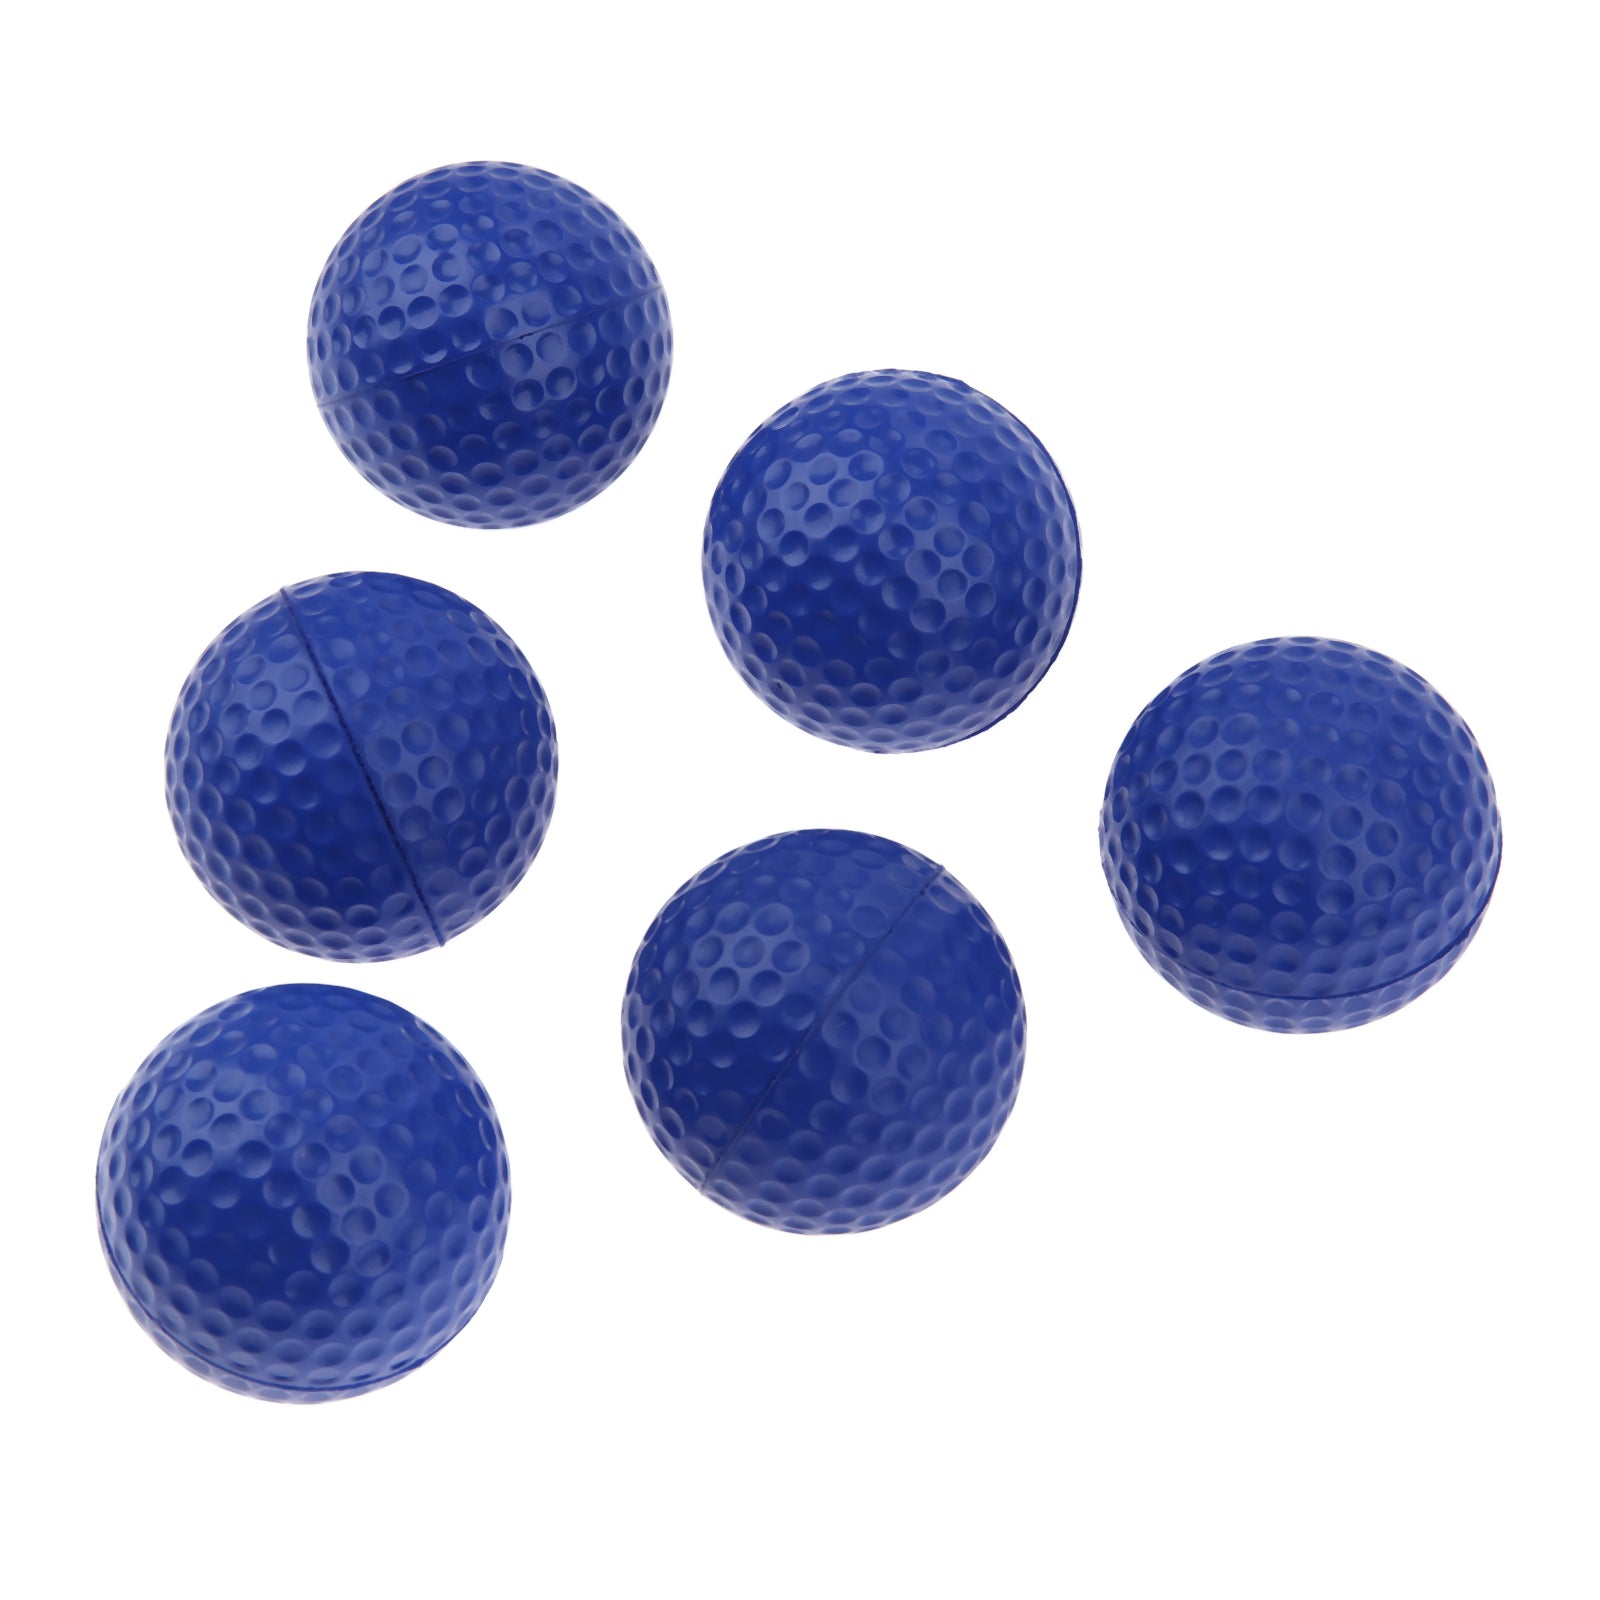 Costbuys  20Pcs Light Foam Golf Balls for Indoor Outdoor Golf Practice Balls PU Material Sport Training Sponge Golf Balls 6 Colo